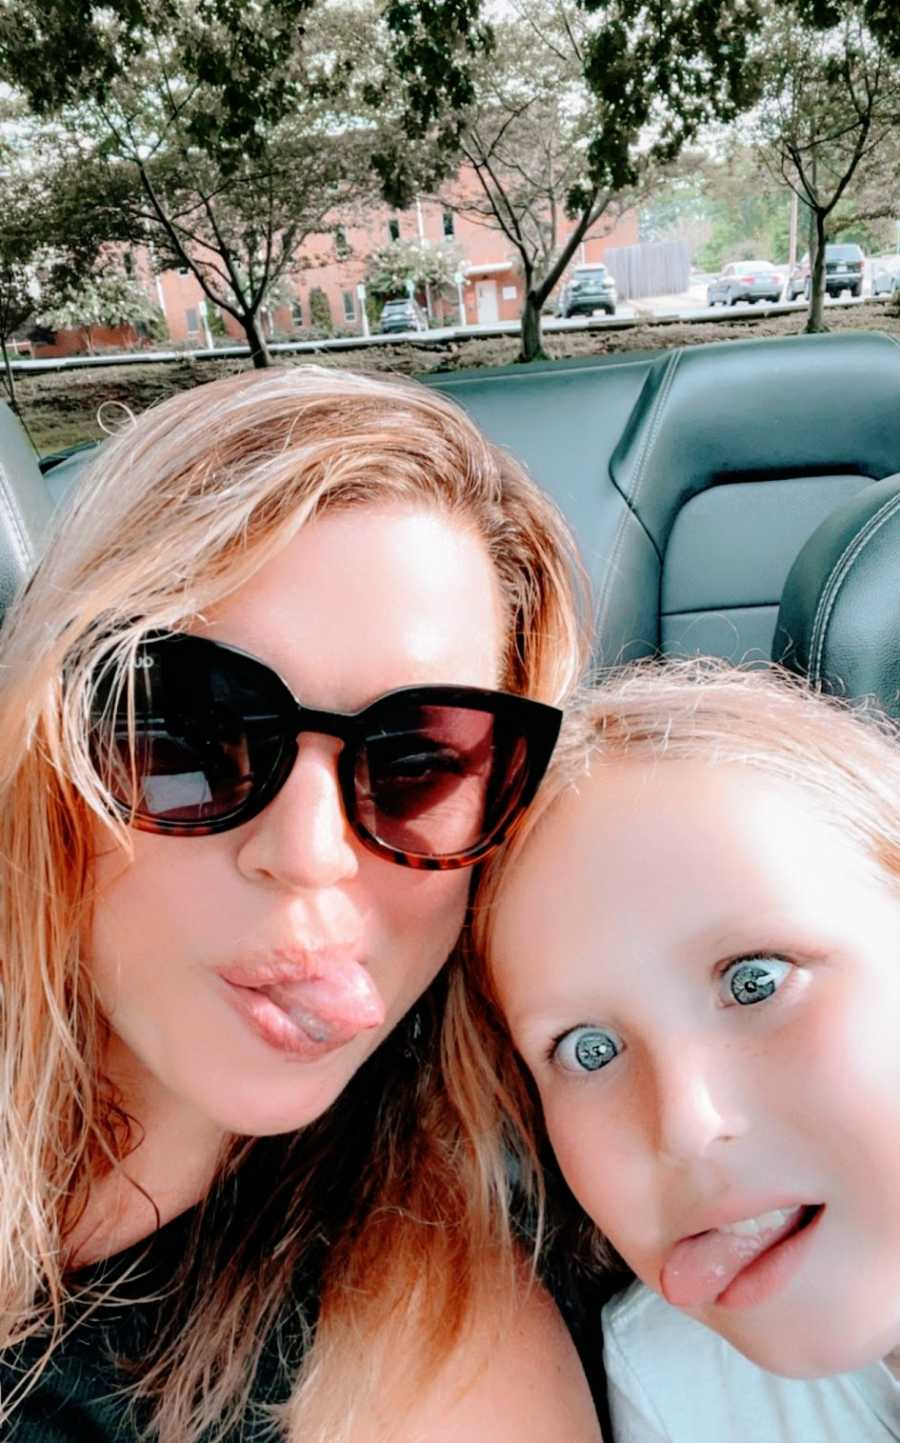 A mom and her daughter make silly faces in their car